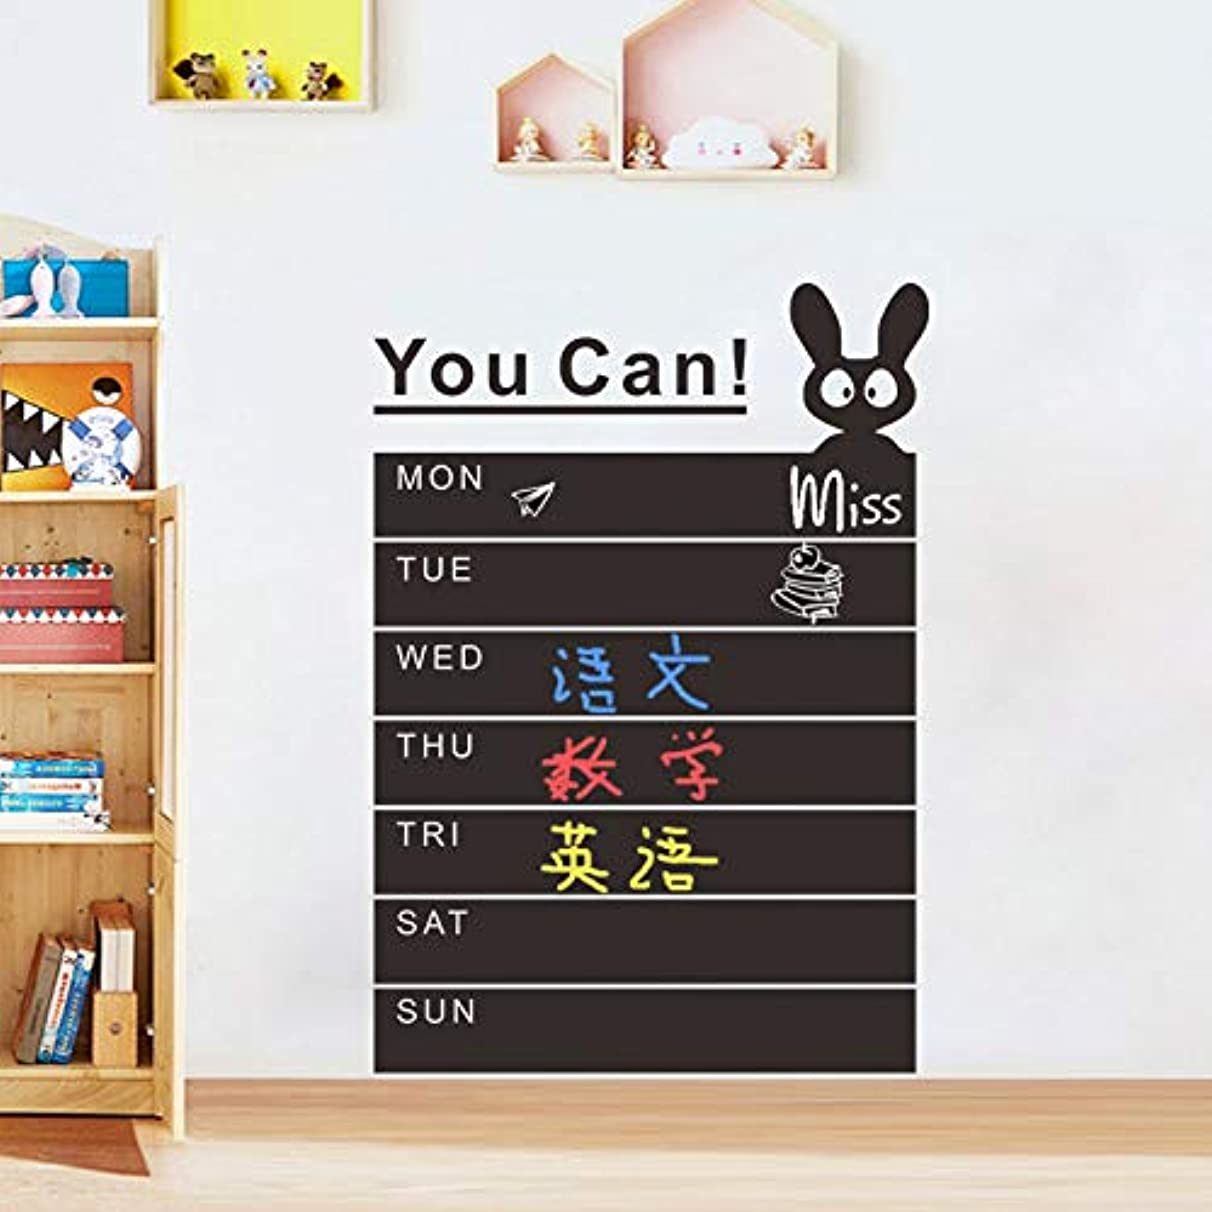 Samoii Wall Decal,Chalkboard Wall Sticker, DIY Vinyl Chalkboard Removable Blackboard Wall Sticker Decal PVC Wall Decal Self Adhesive DIY Reusable Erasable for Kids Home Office